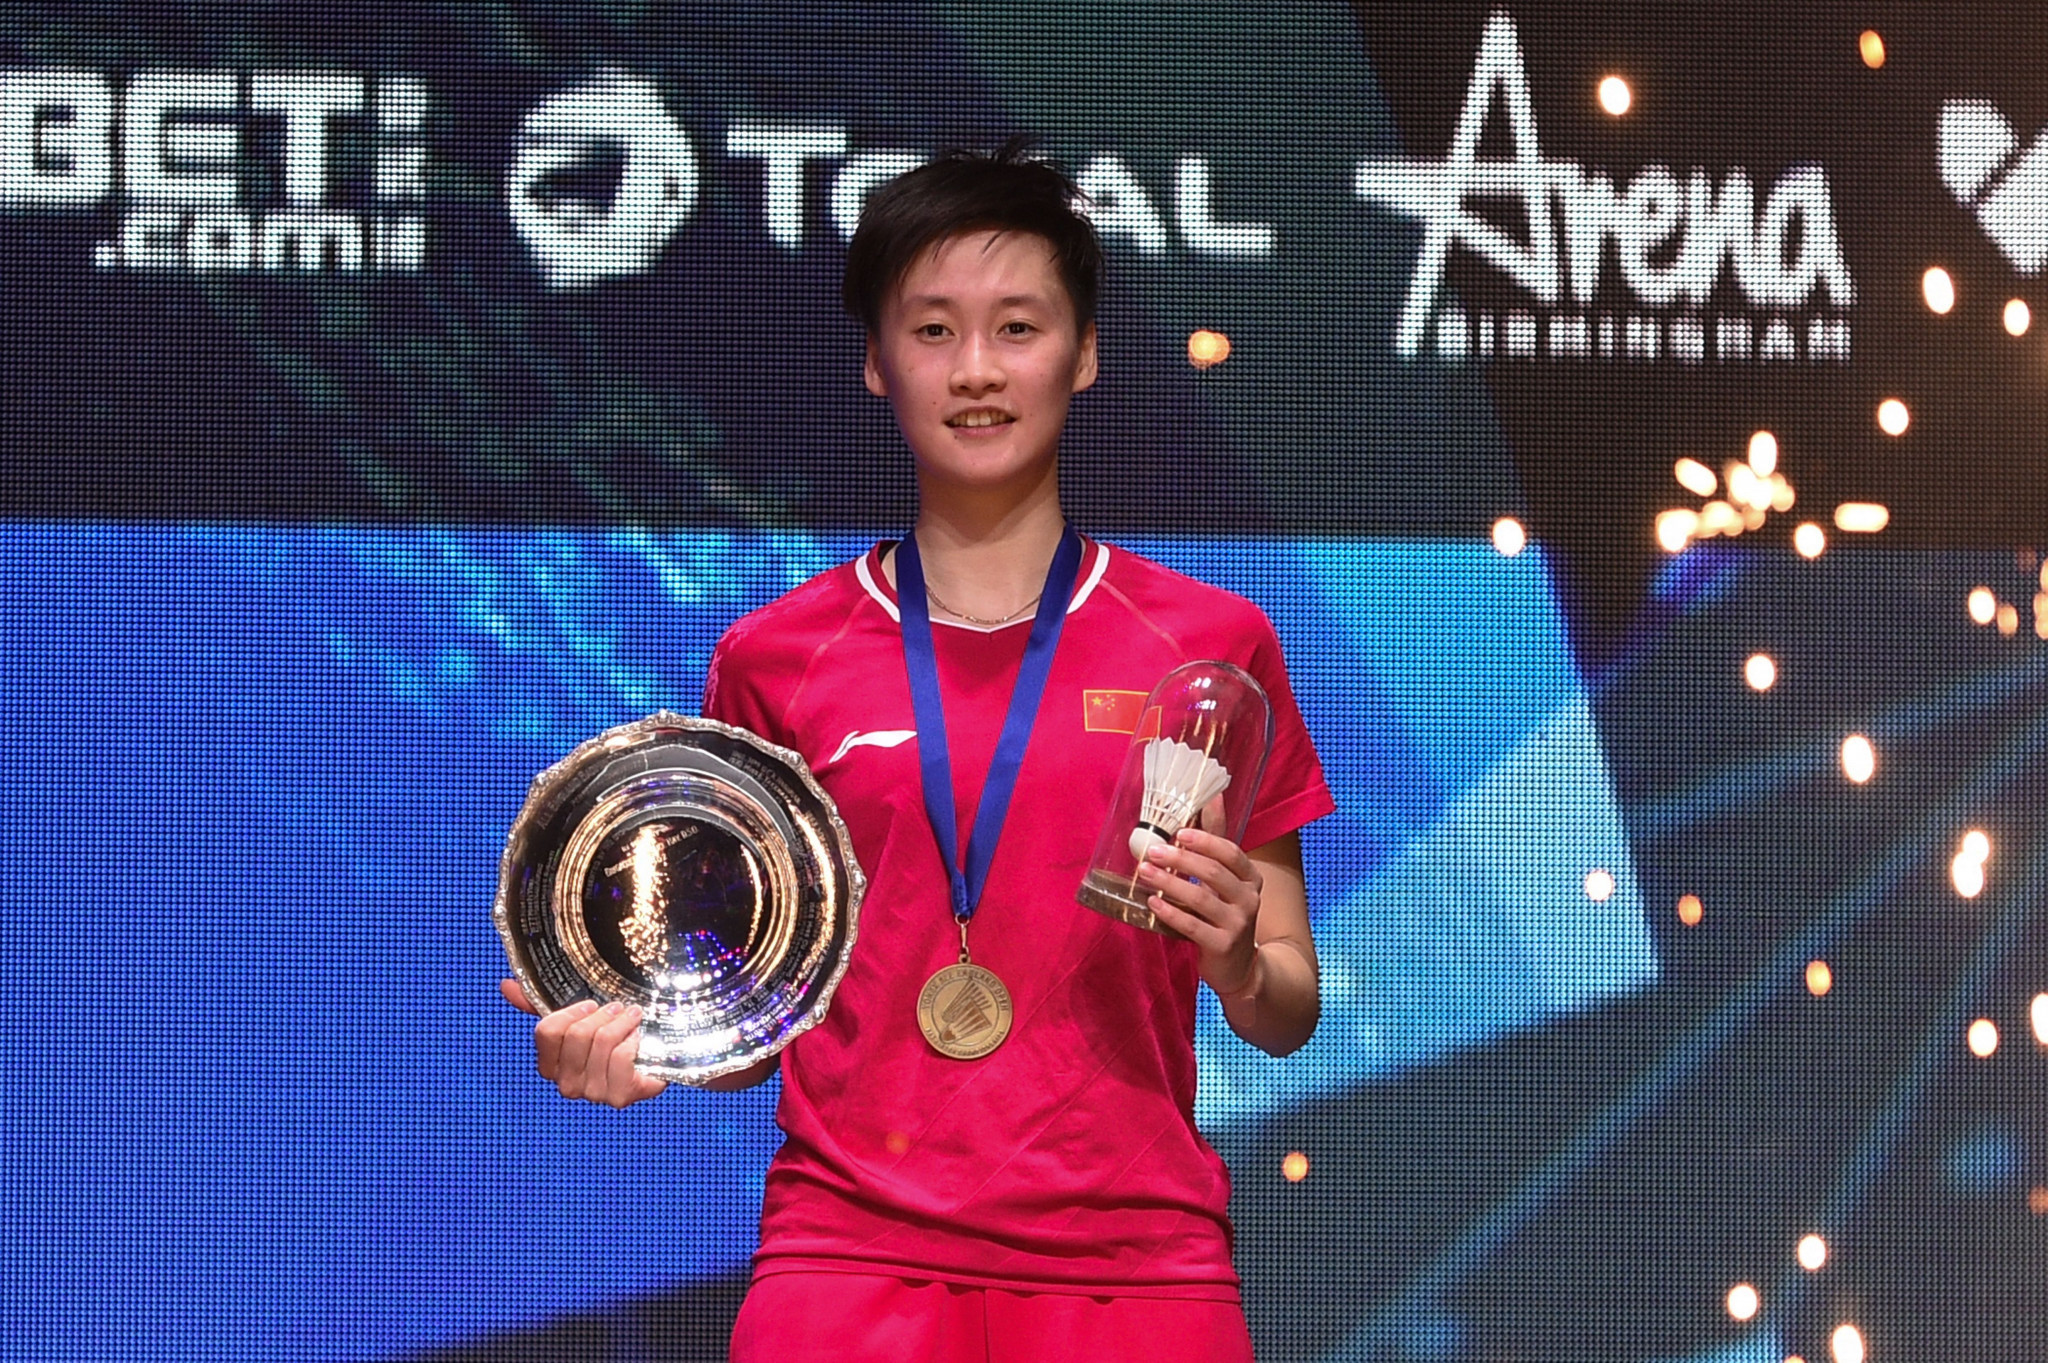 Chen Yufei was crowned as the women's champion  ©Getty Images